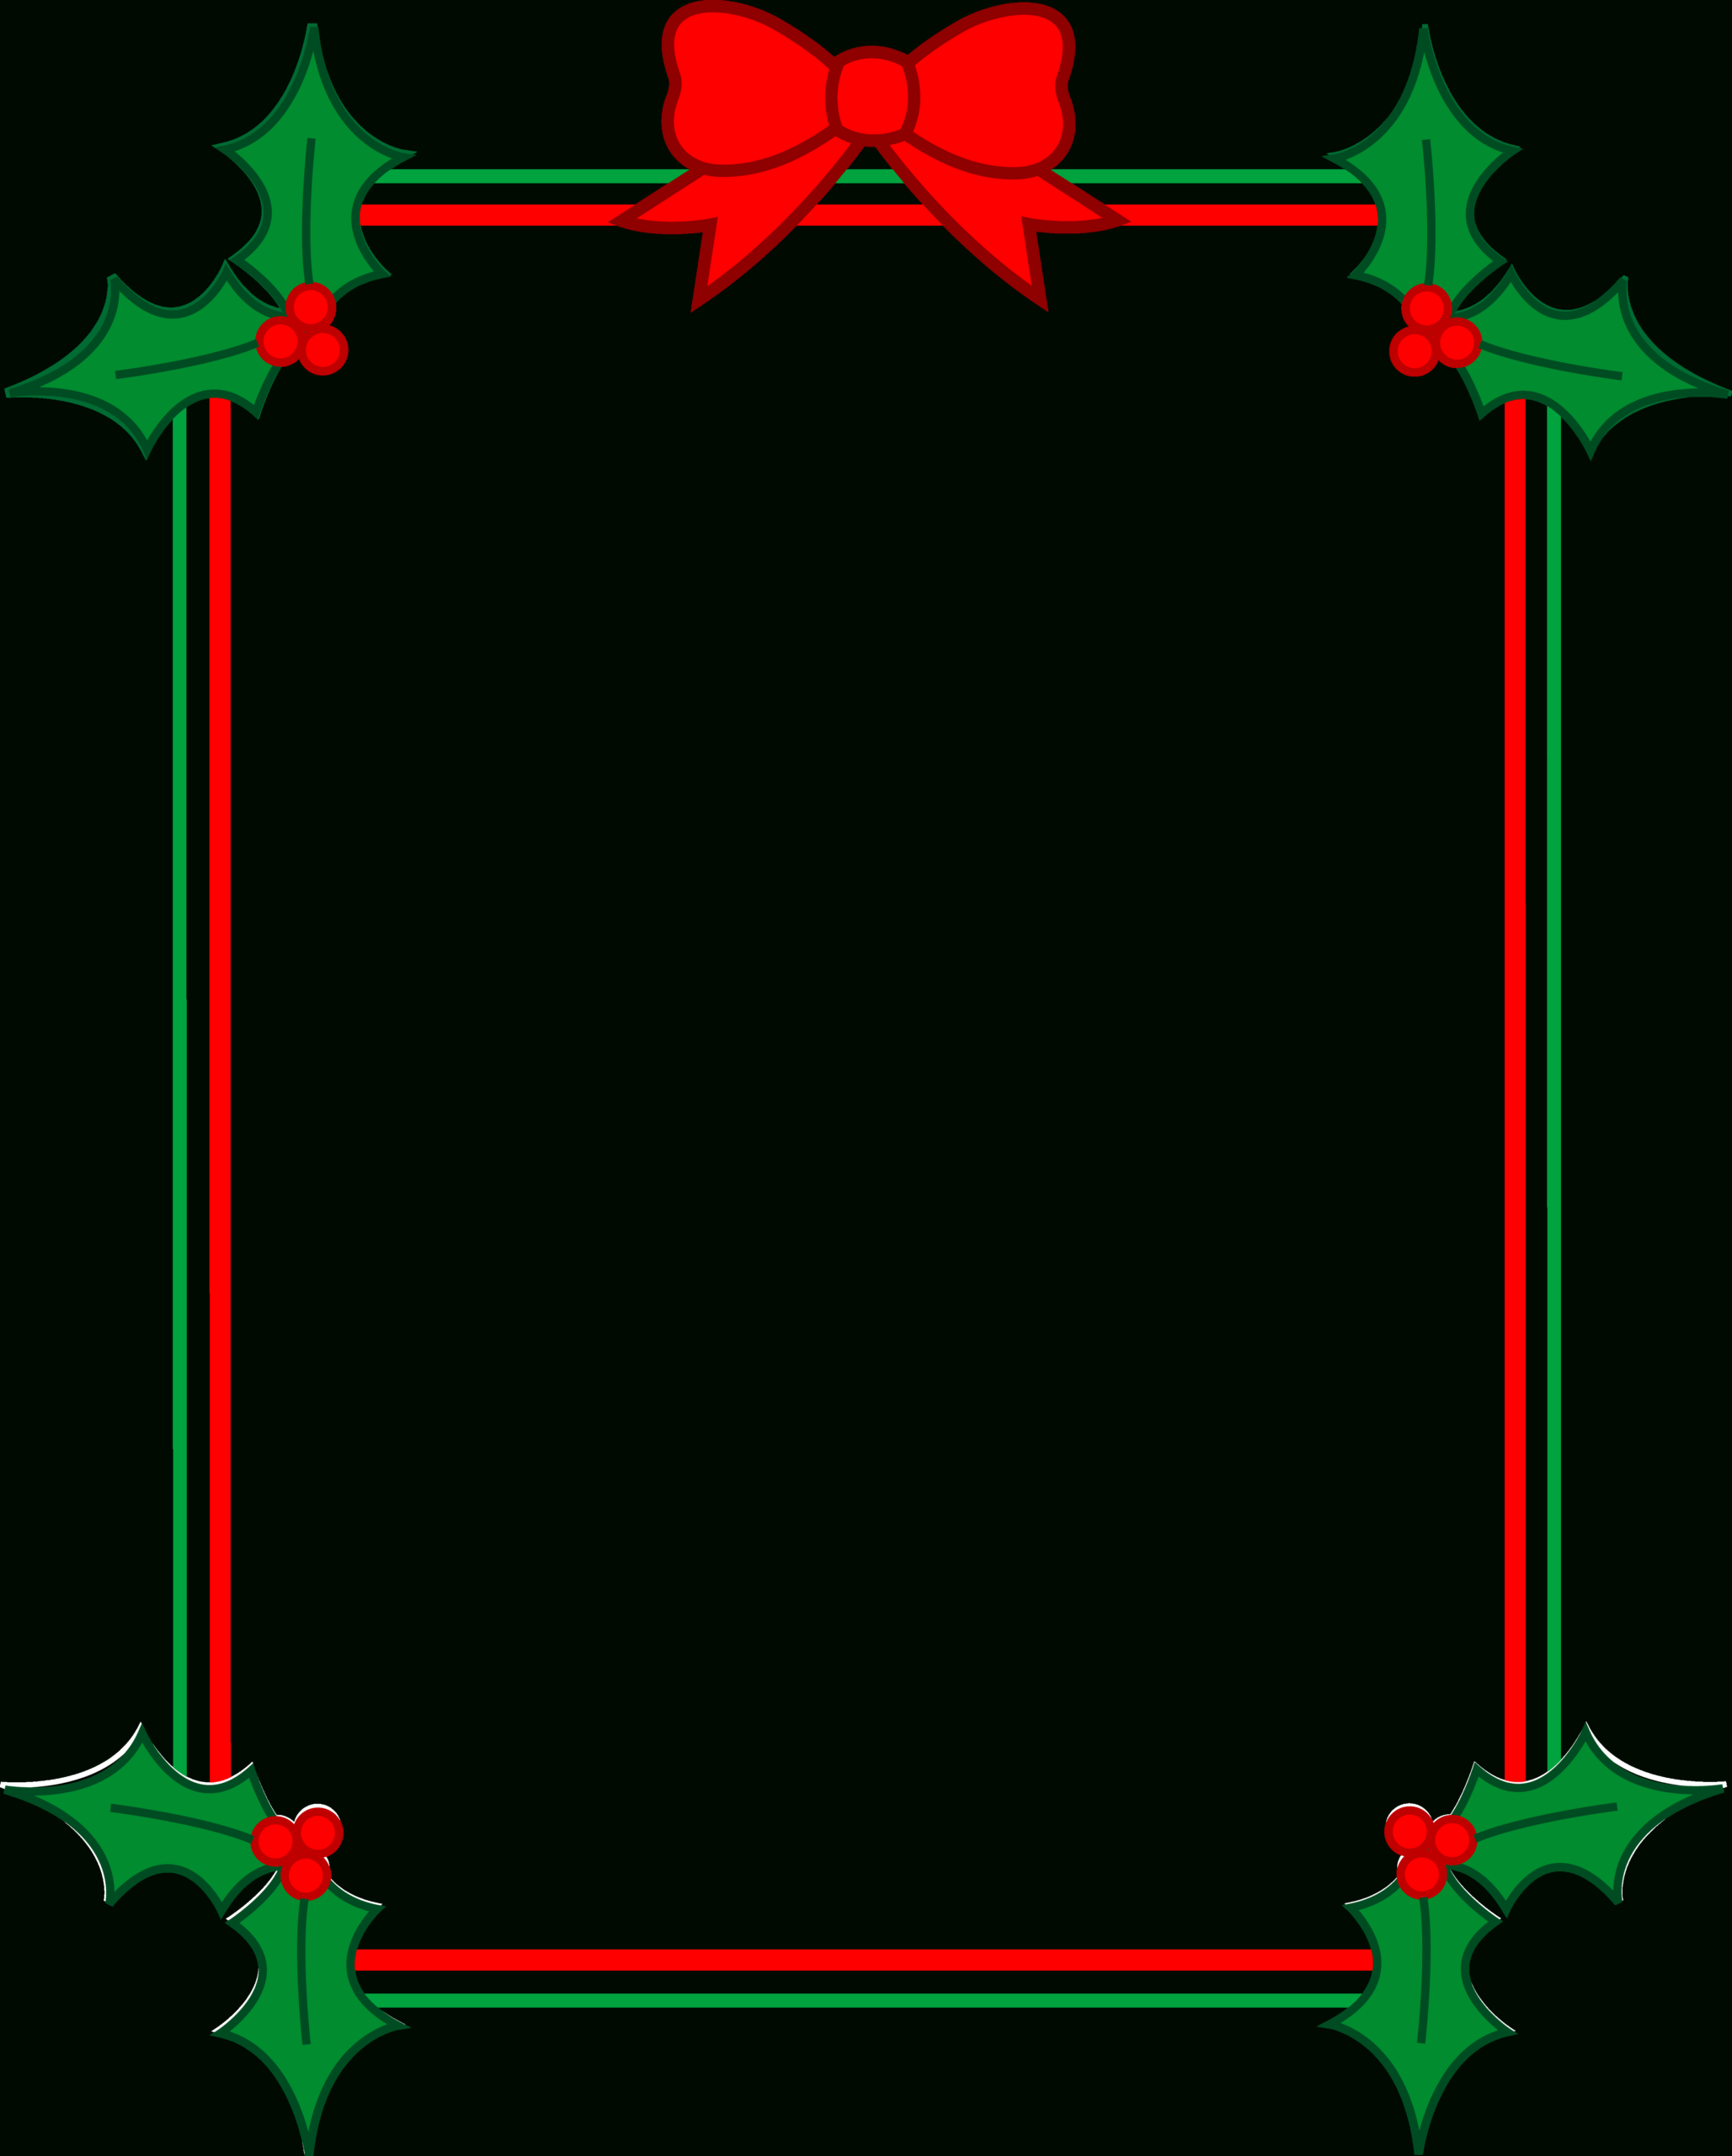 Christmas Border Word - Forza.mbiconsultingltd Inside Christmas Border Word Template